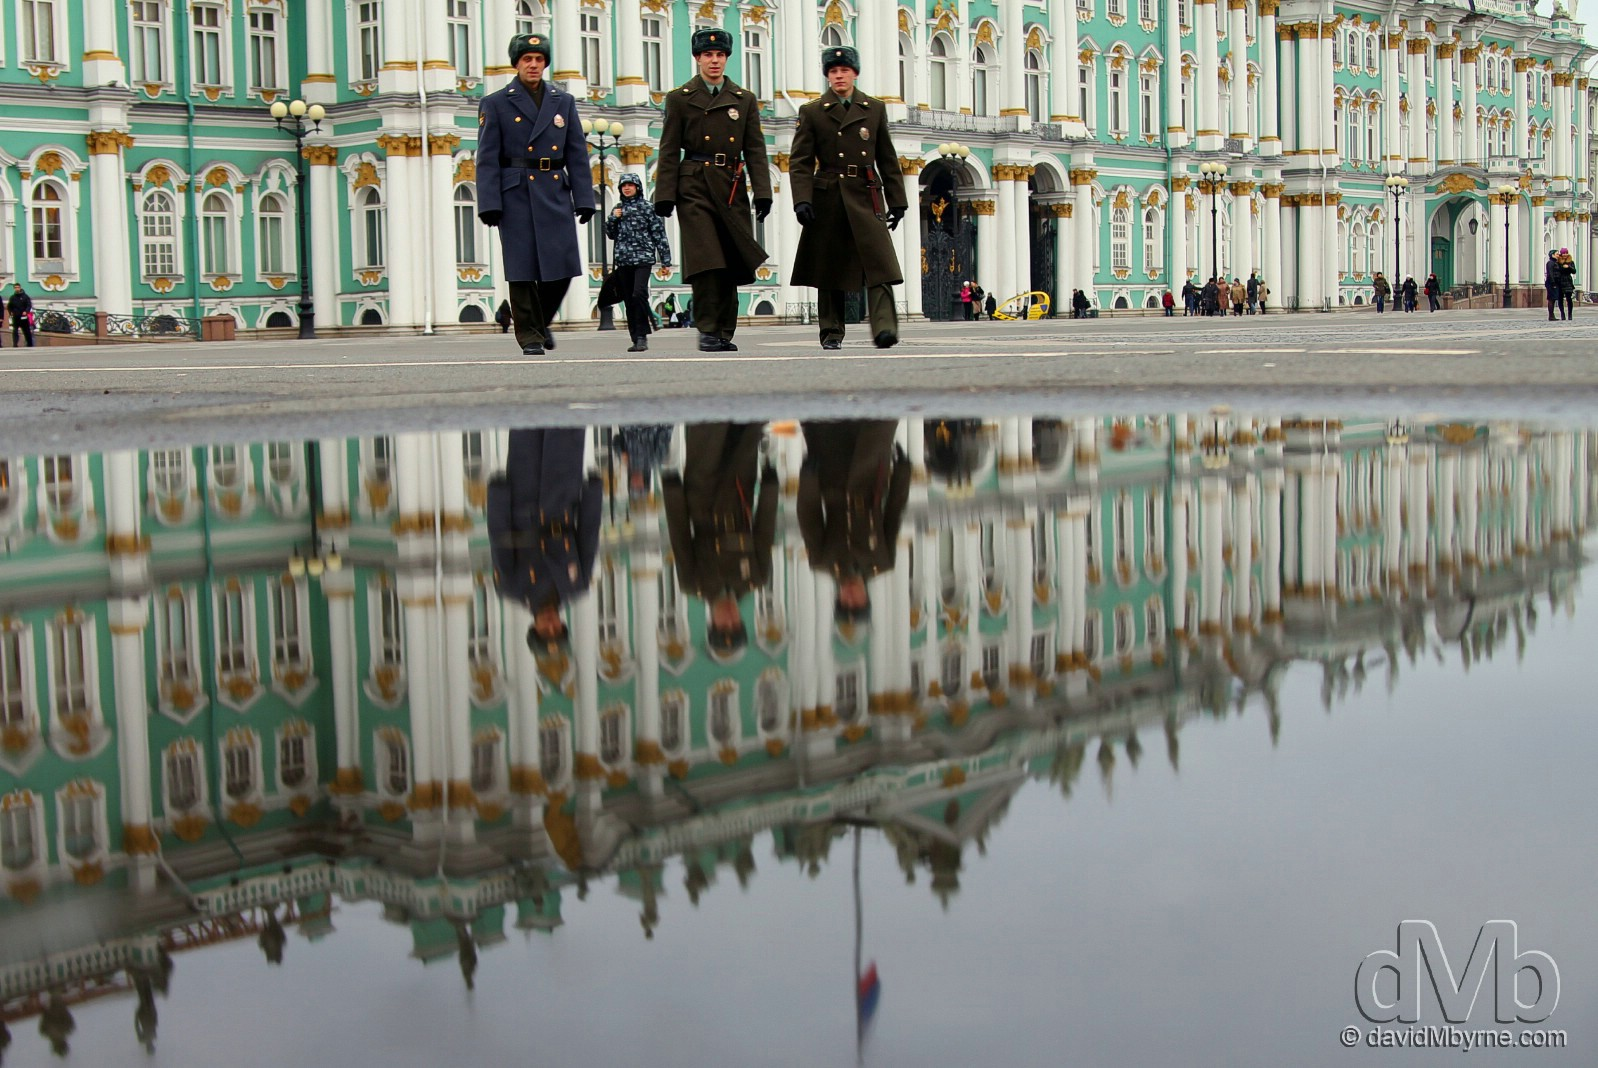 Reflections of the facade of the Winter Palace in  Palace Square, St Petersburg, Russia. November 2012 (EOS 60D ||